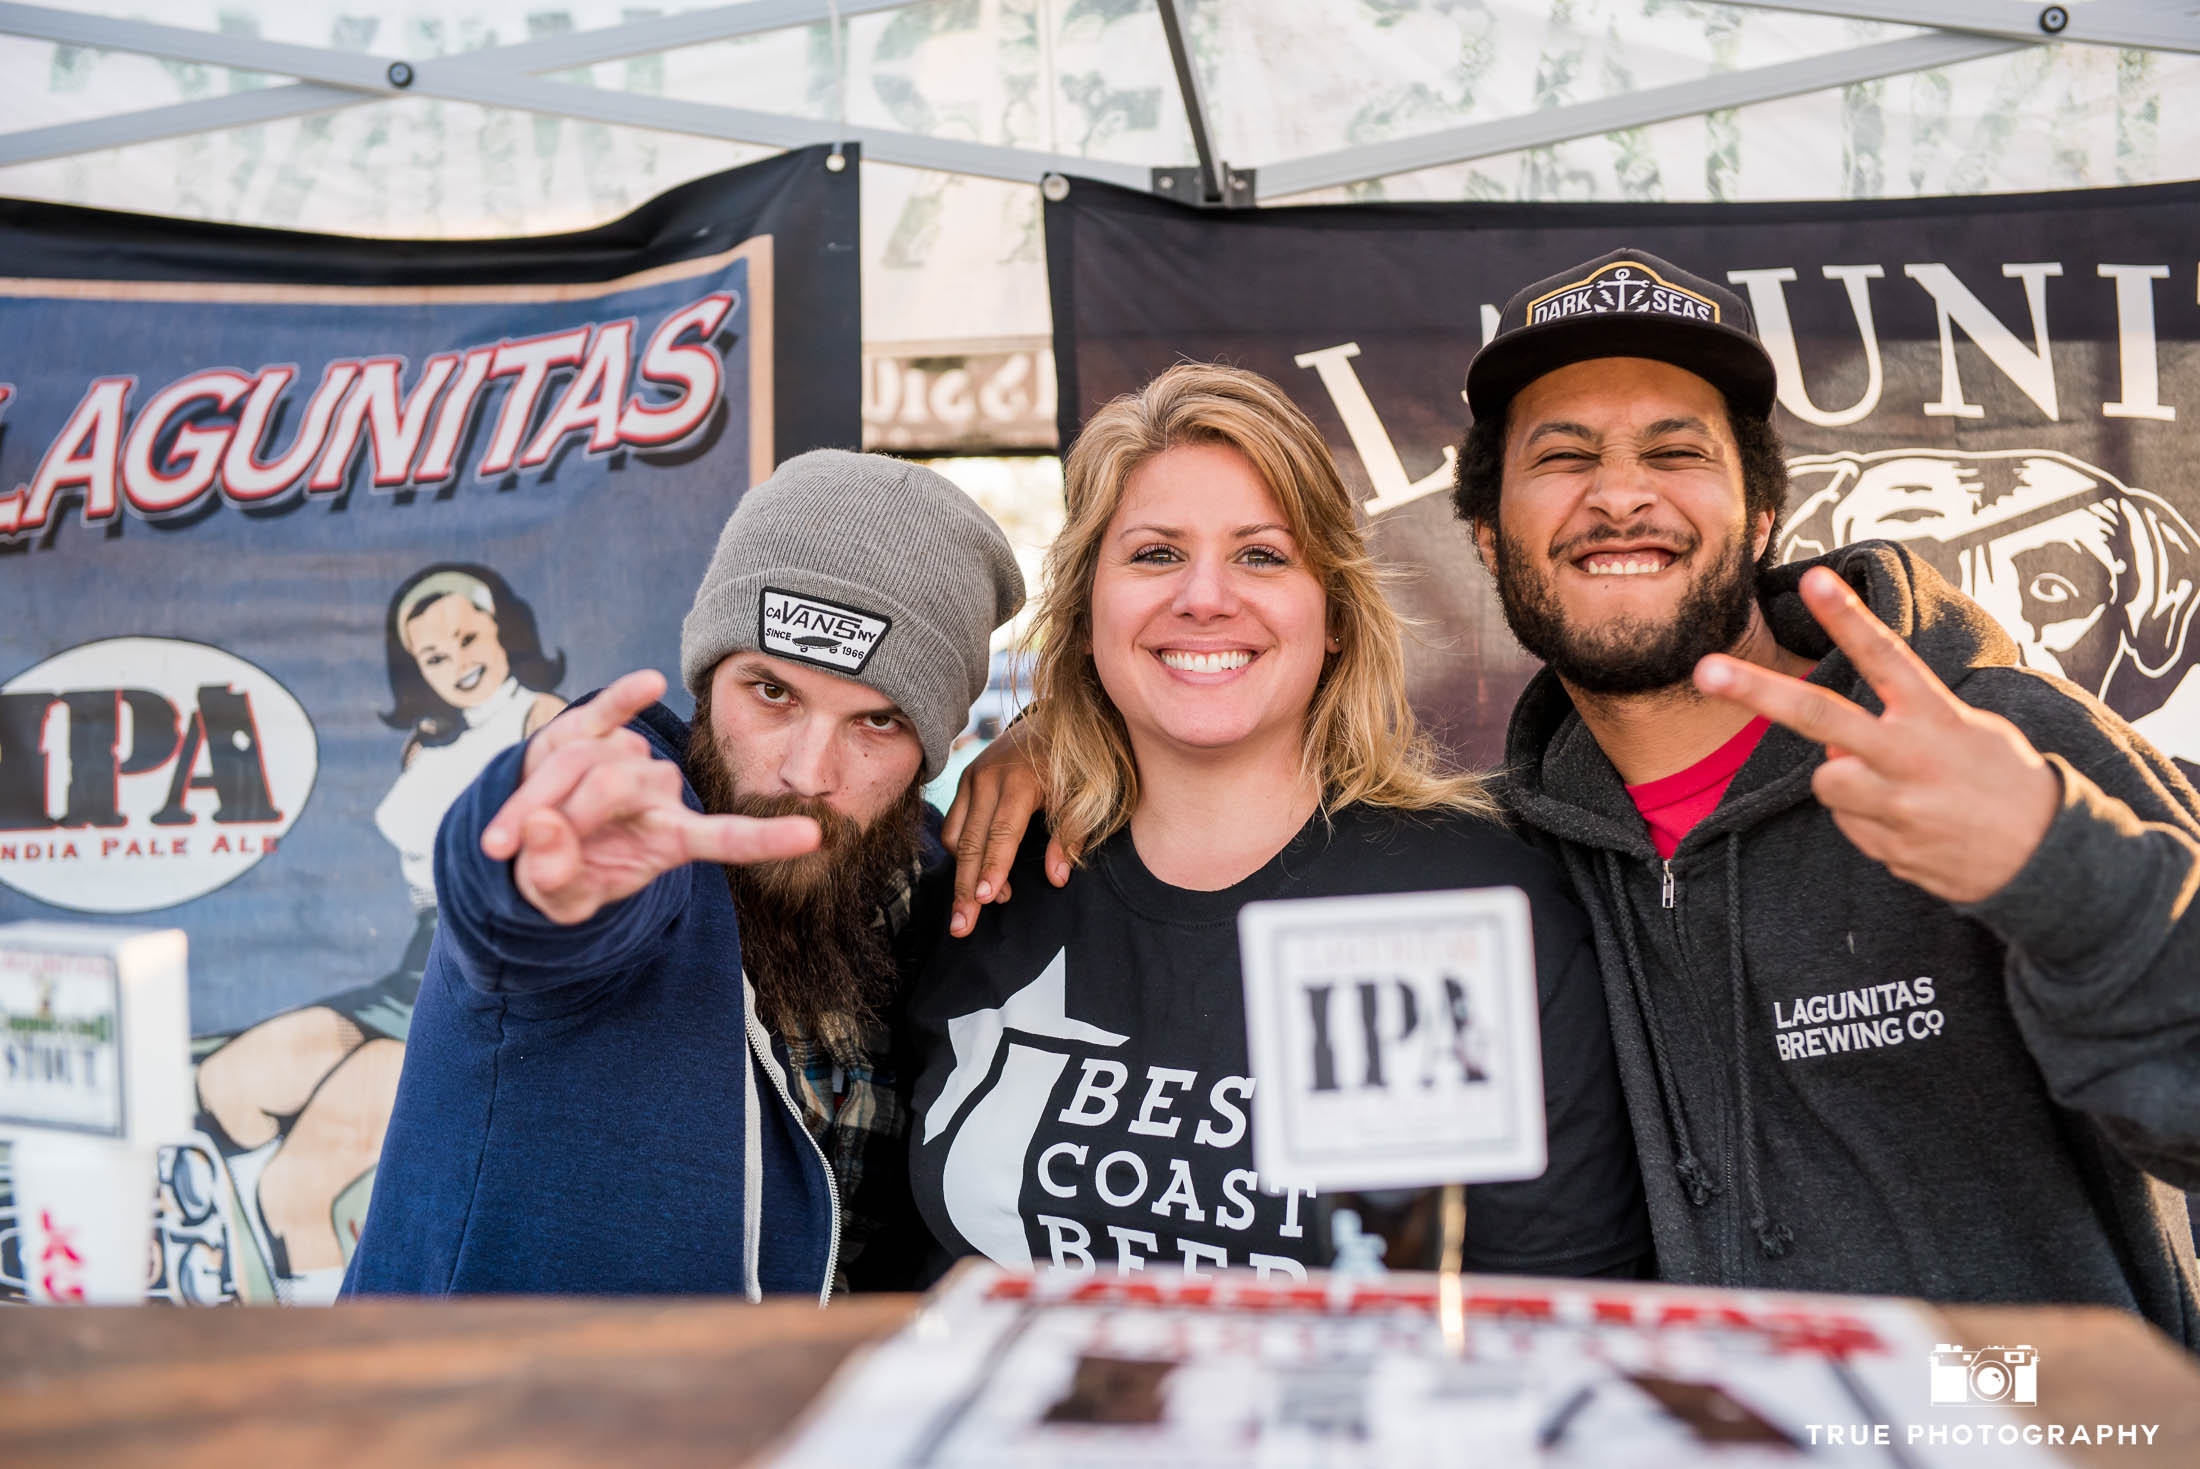 Brewers from Lagunitas Brewing Company pose for fun group photo during Best Coast Beer Fest